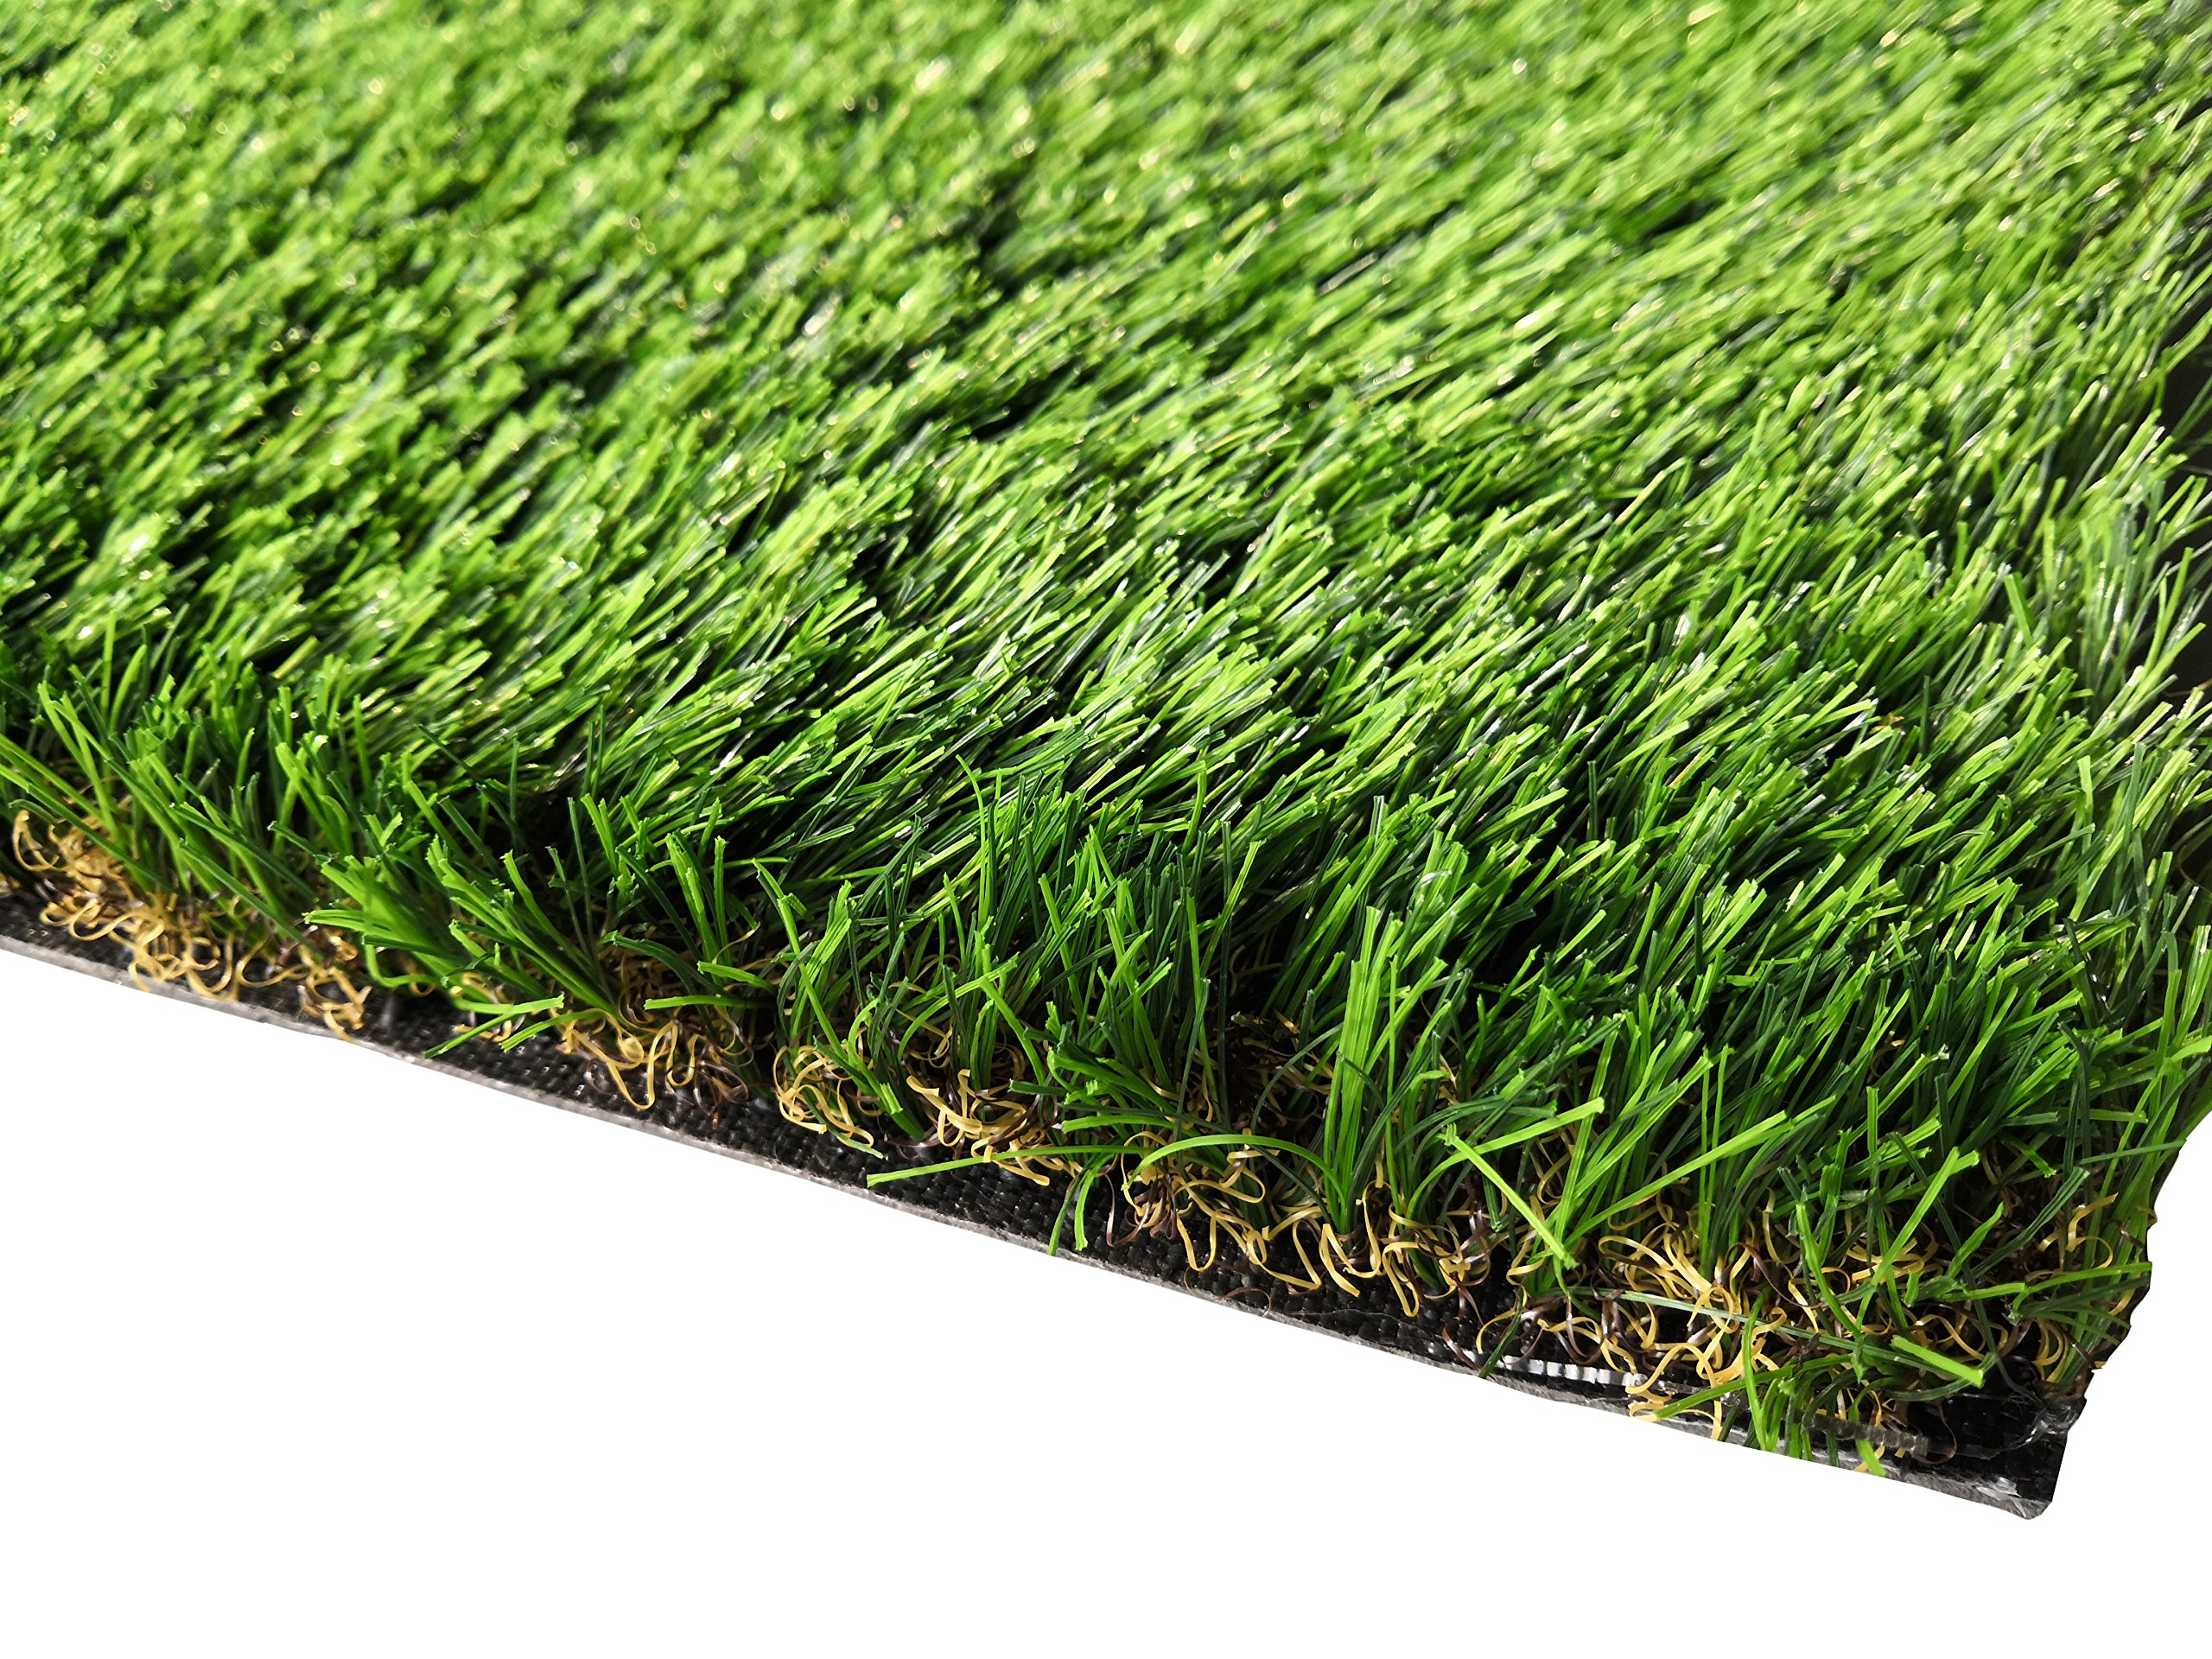 PZG Commerical Artificial Grass Patch w/ Drainage Holes & Rubber Backing | Extra-Heavy & Durable Turf | Lead-Free Fake Grass for Dogs or Outdoor Decor | Total Wt. - 94 oz & Face Wt. 62 oz | 82' x 7.5' by Pet Zen Garden